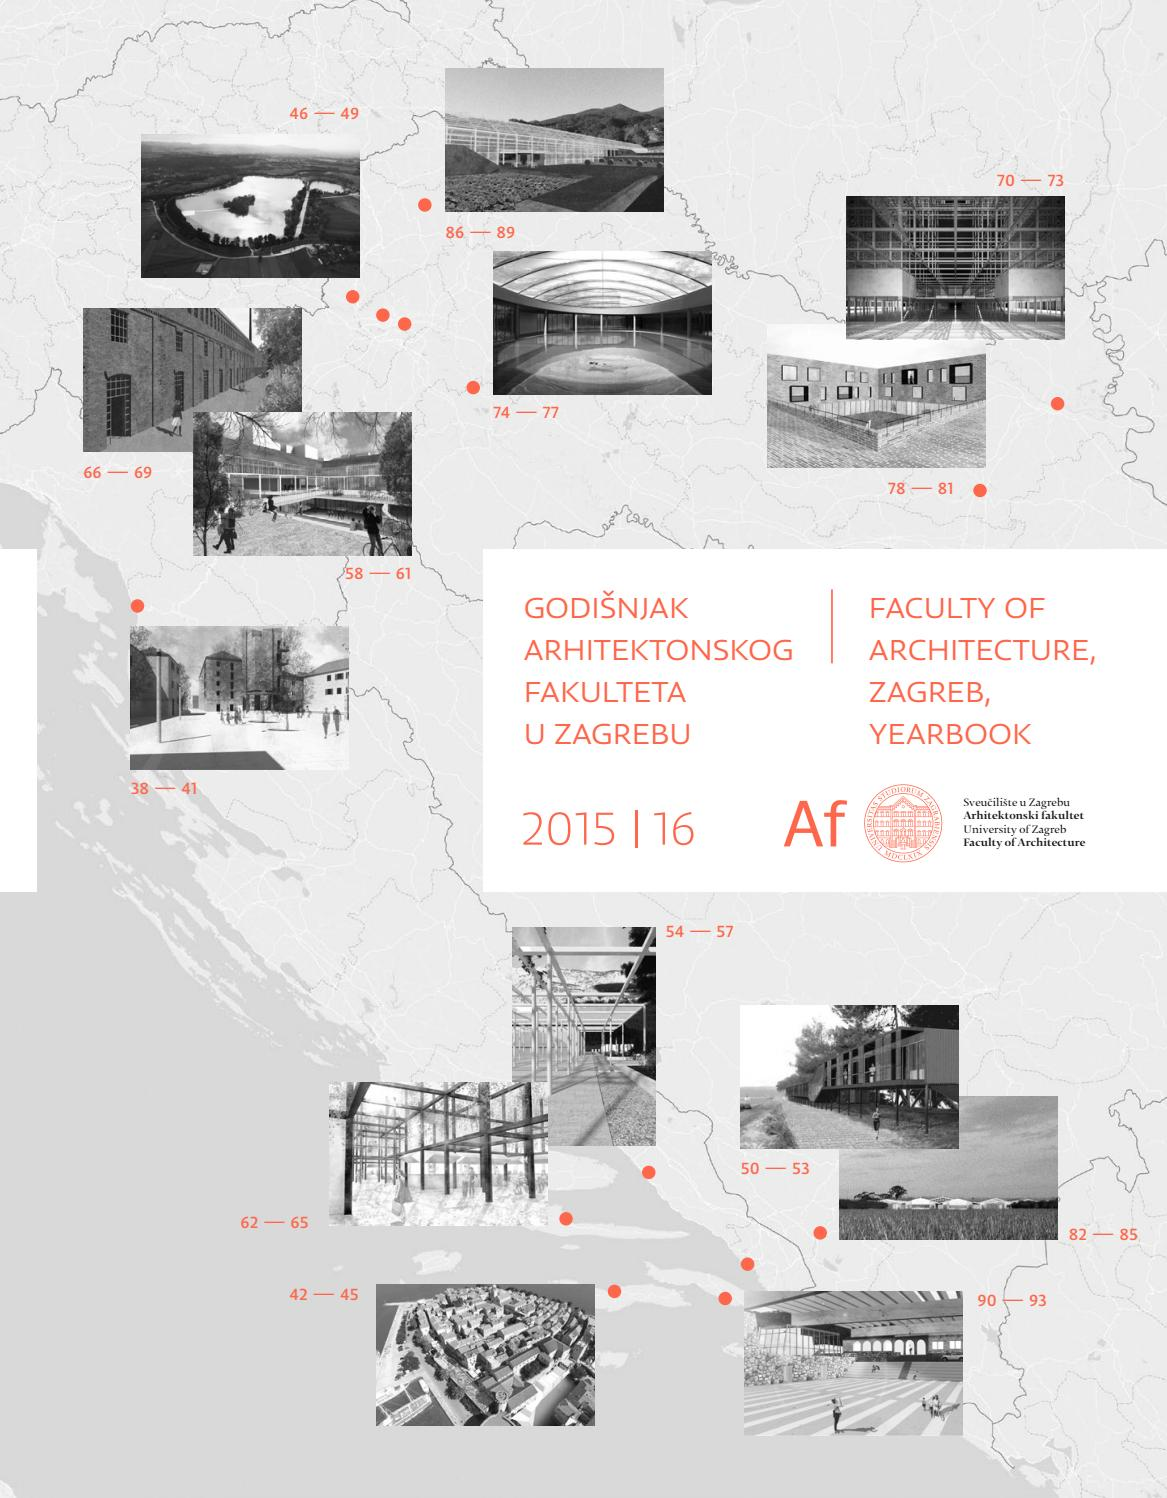 Faculty Of Architecture Zagreb Yearbook 2015 16 By Faculty Of